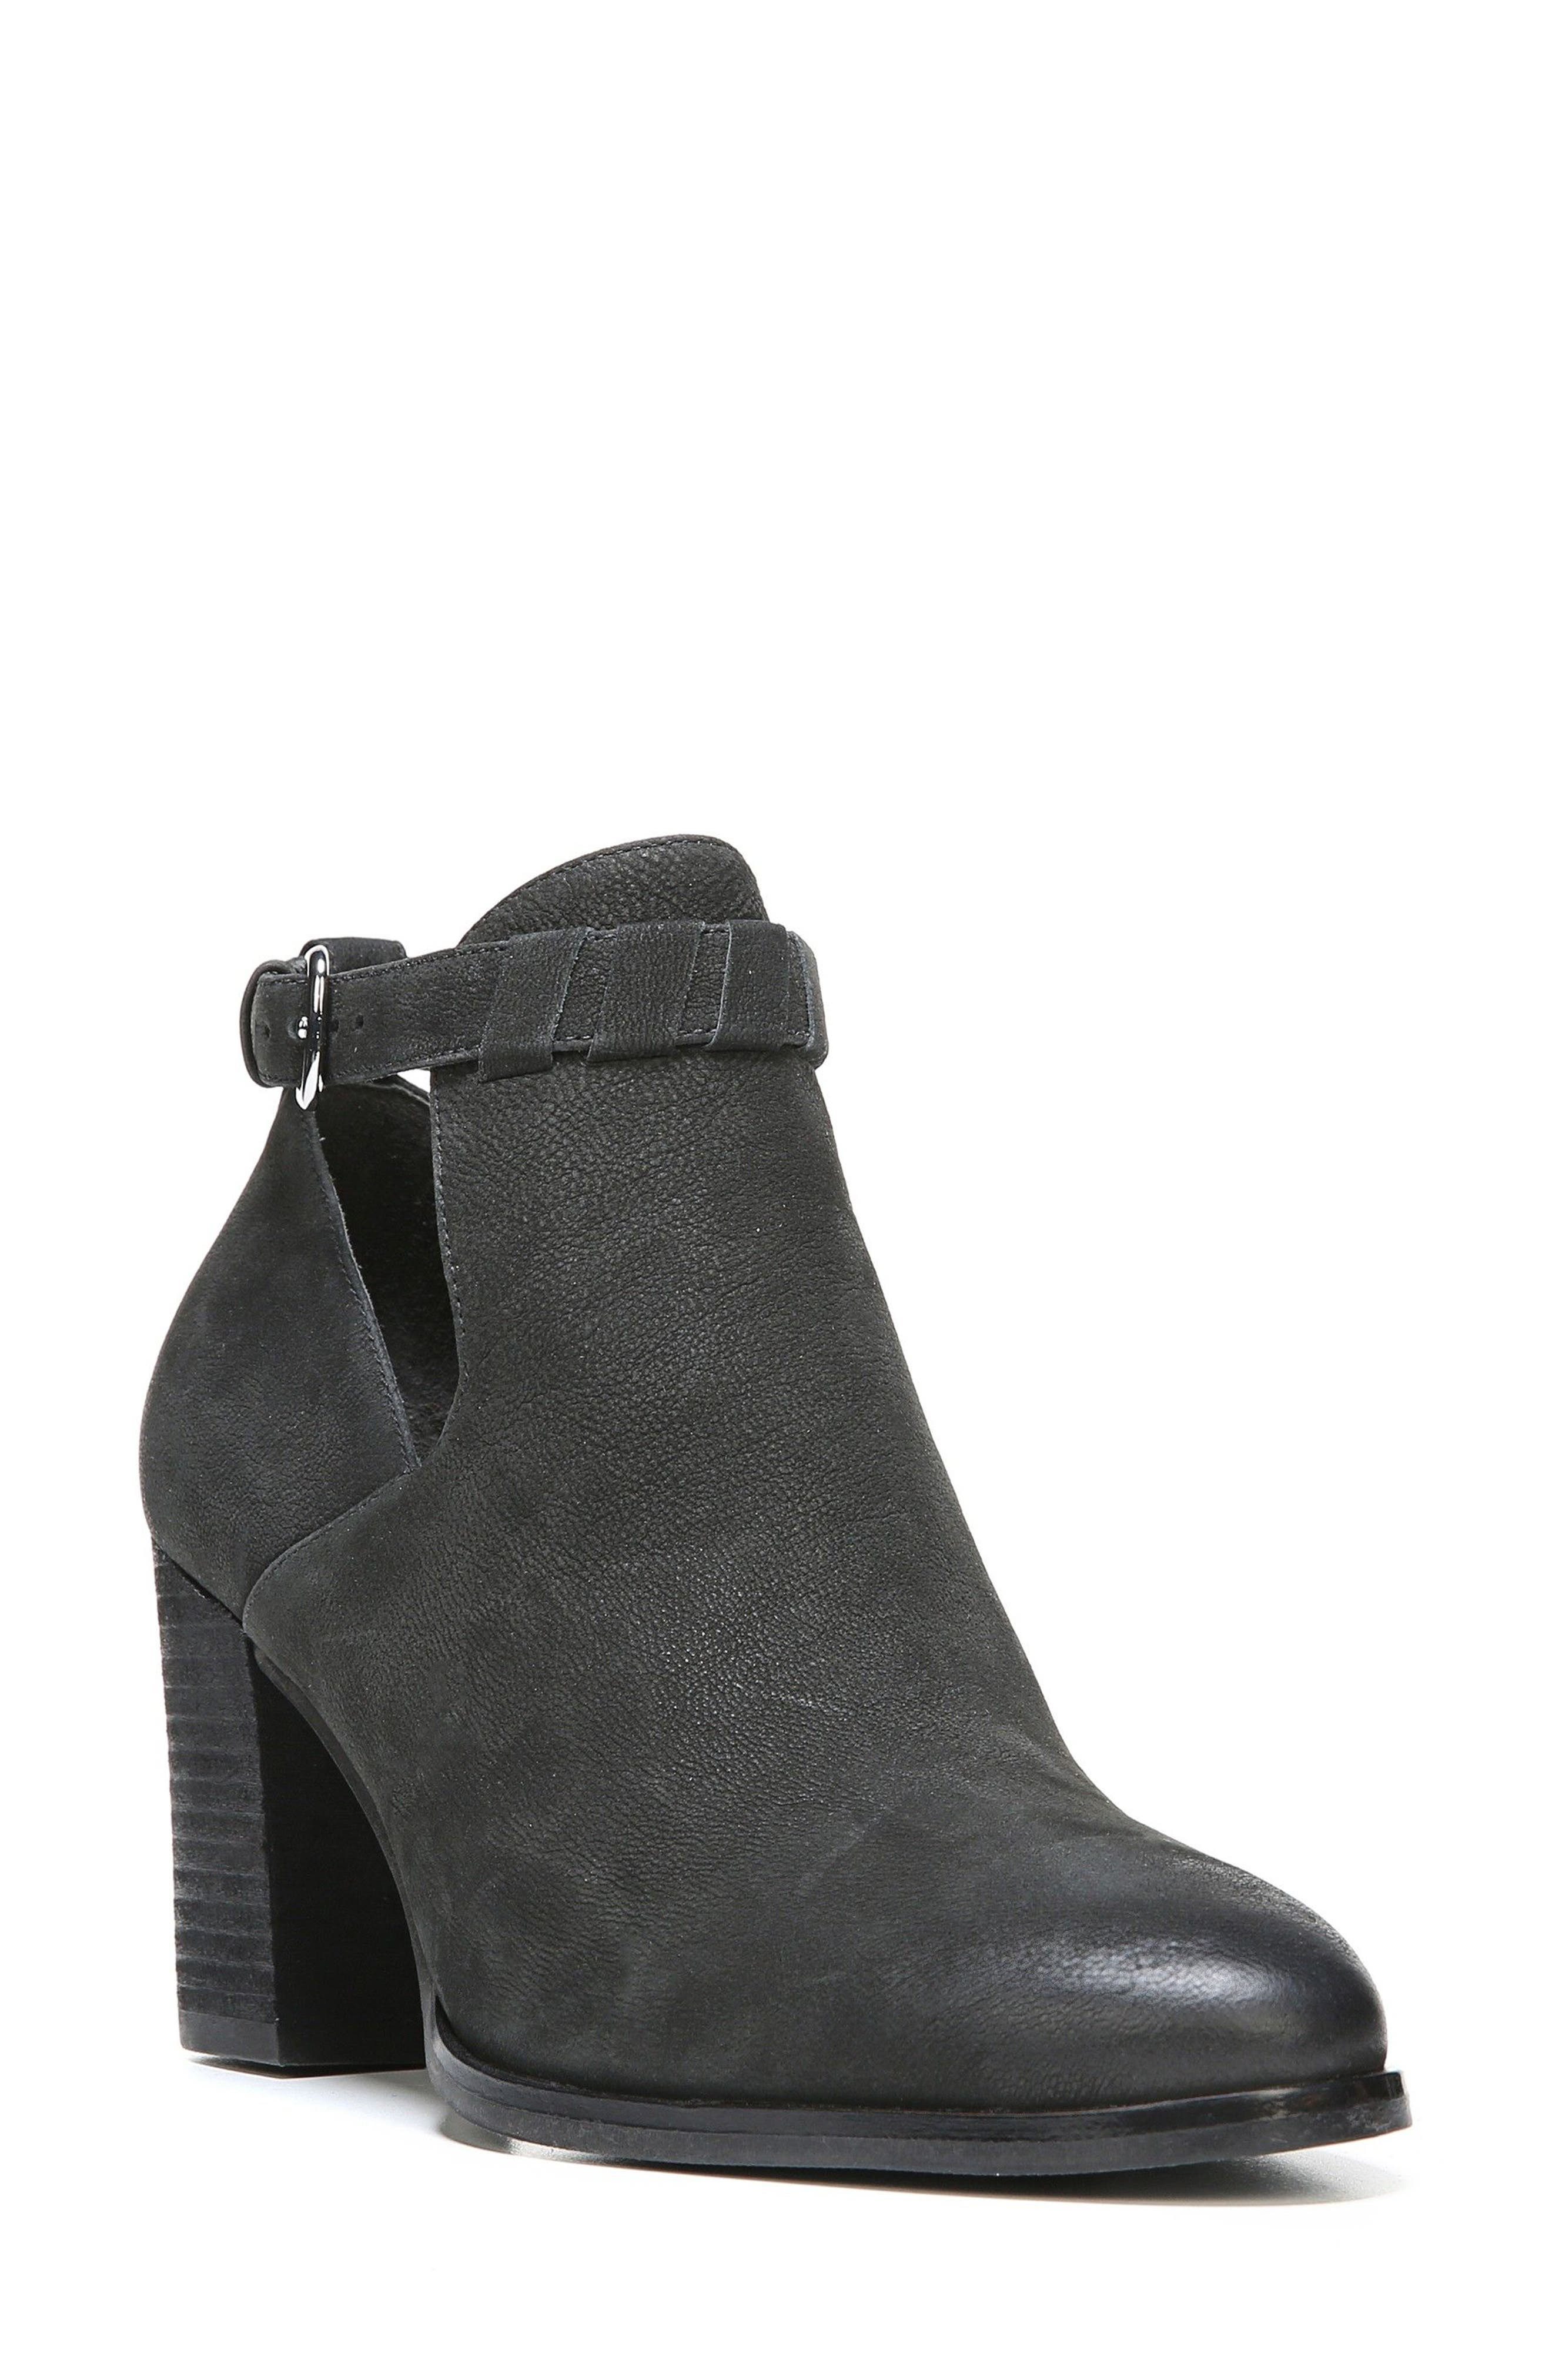 Samantha Block Heel Bootie,                         Main,                         color, Black Nubuck